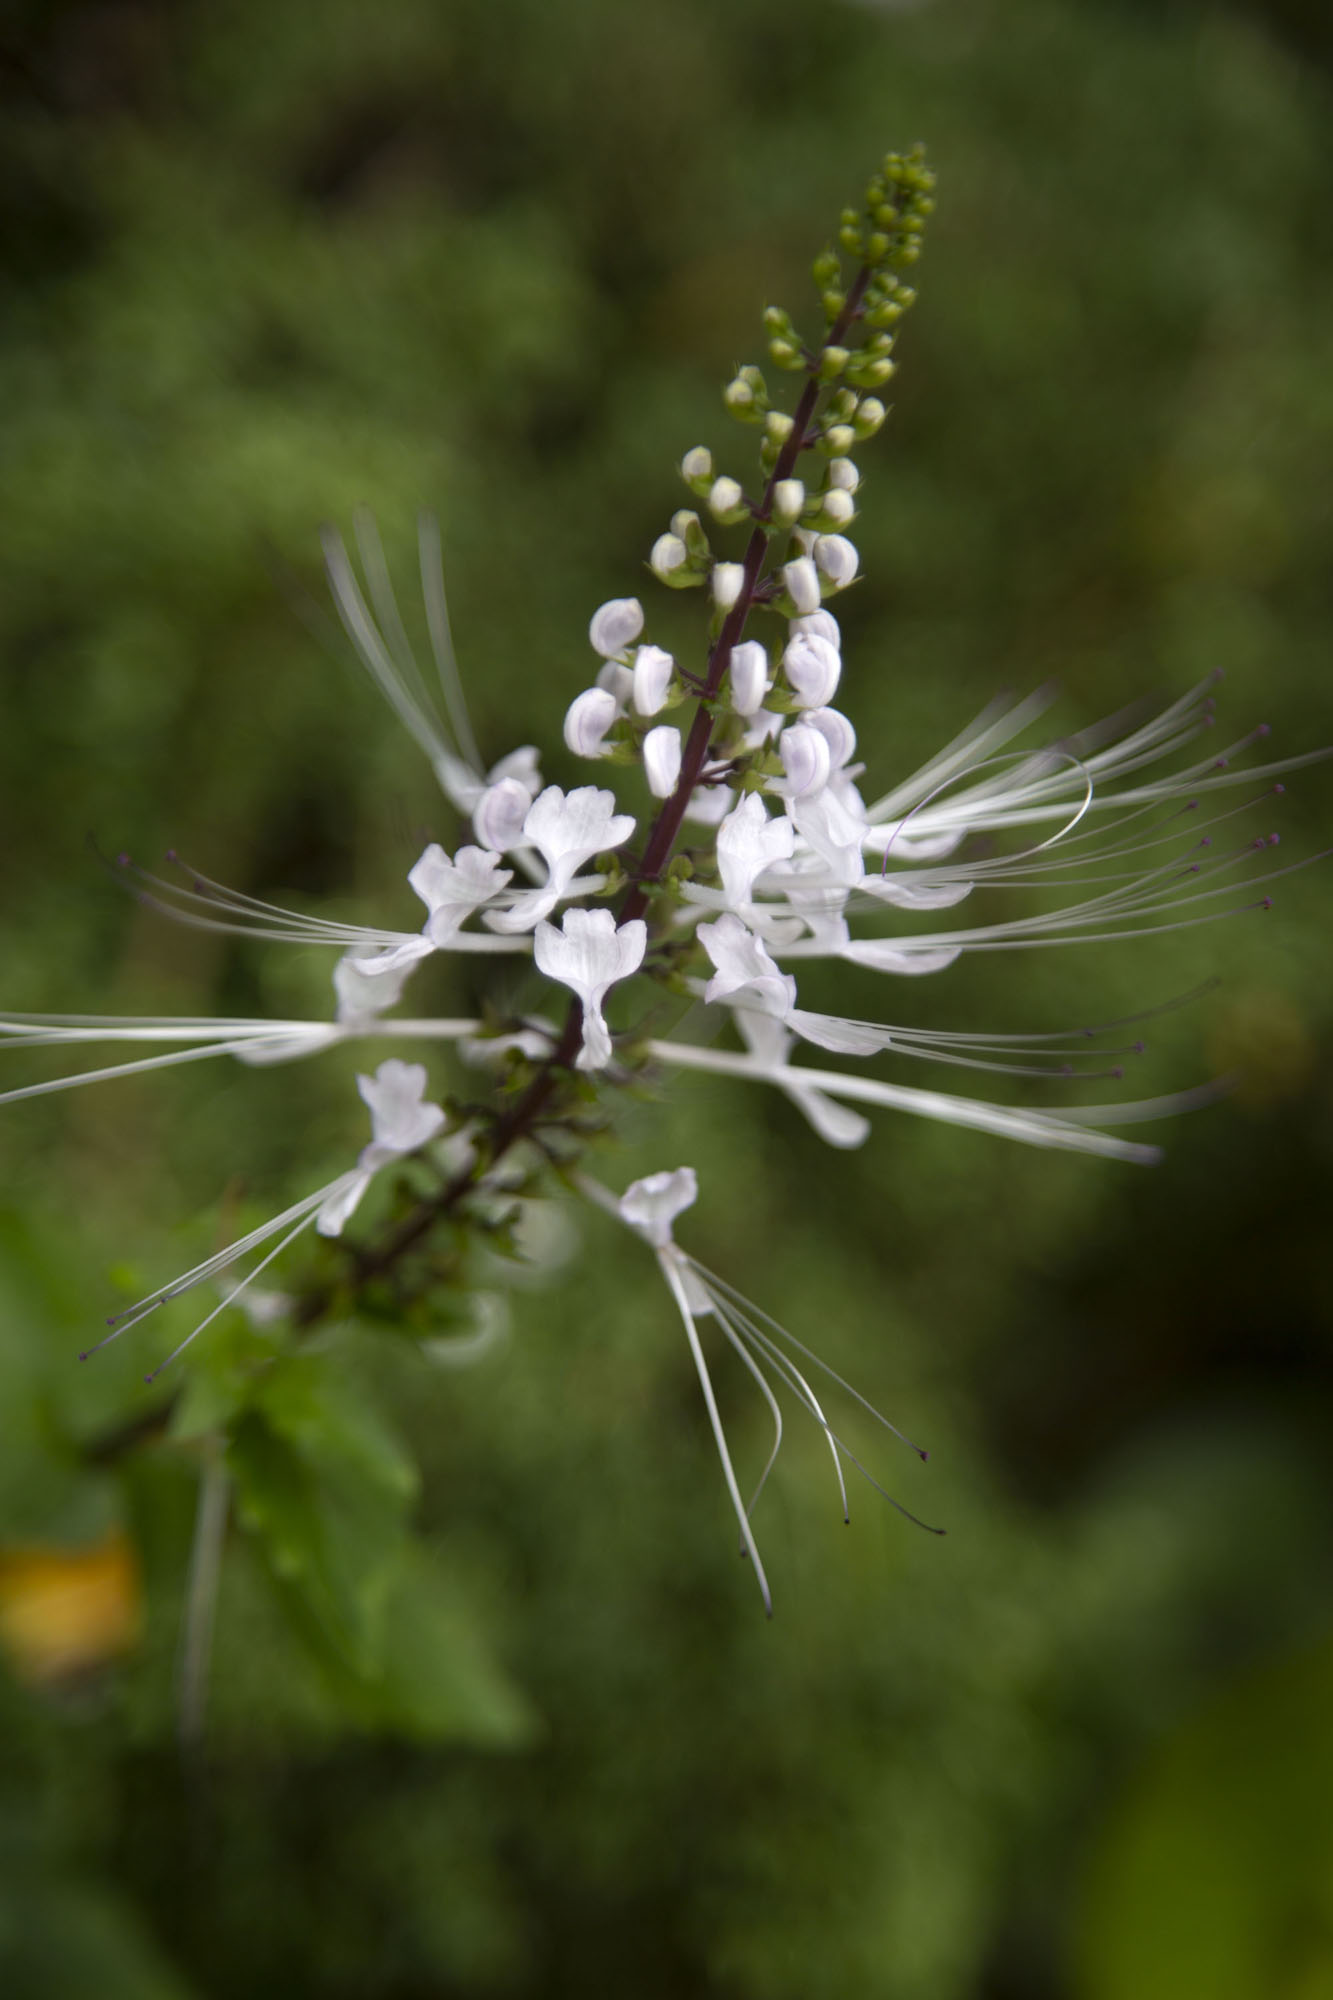 Exquisite white flower in the botanic gardens | Singapore Botanic Gardens | 新加玻